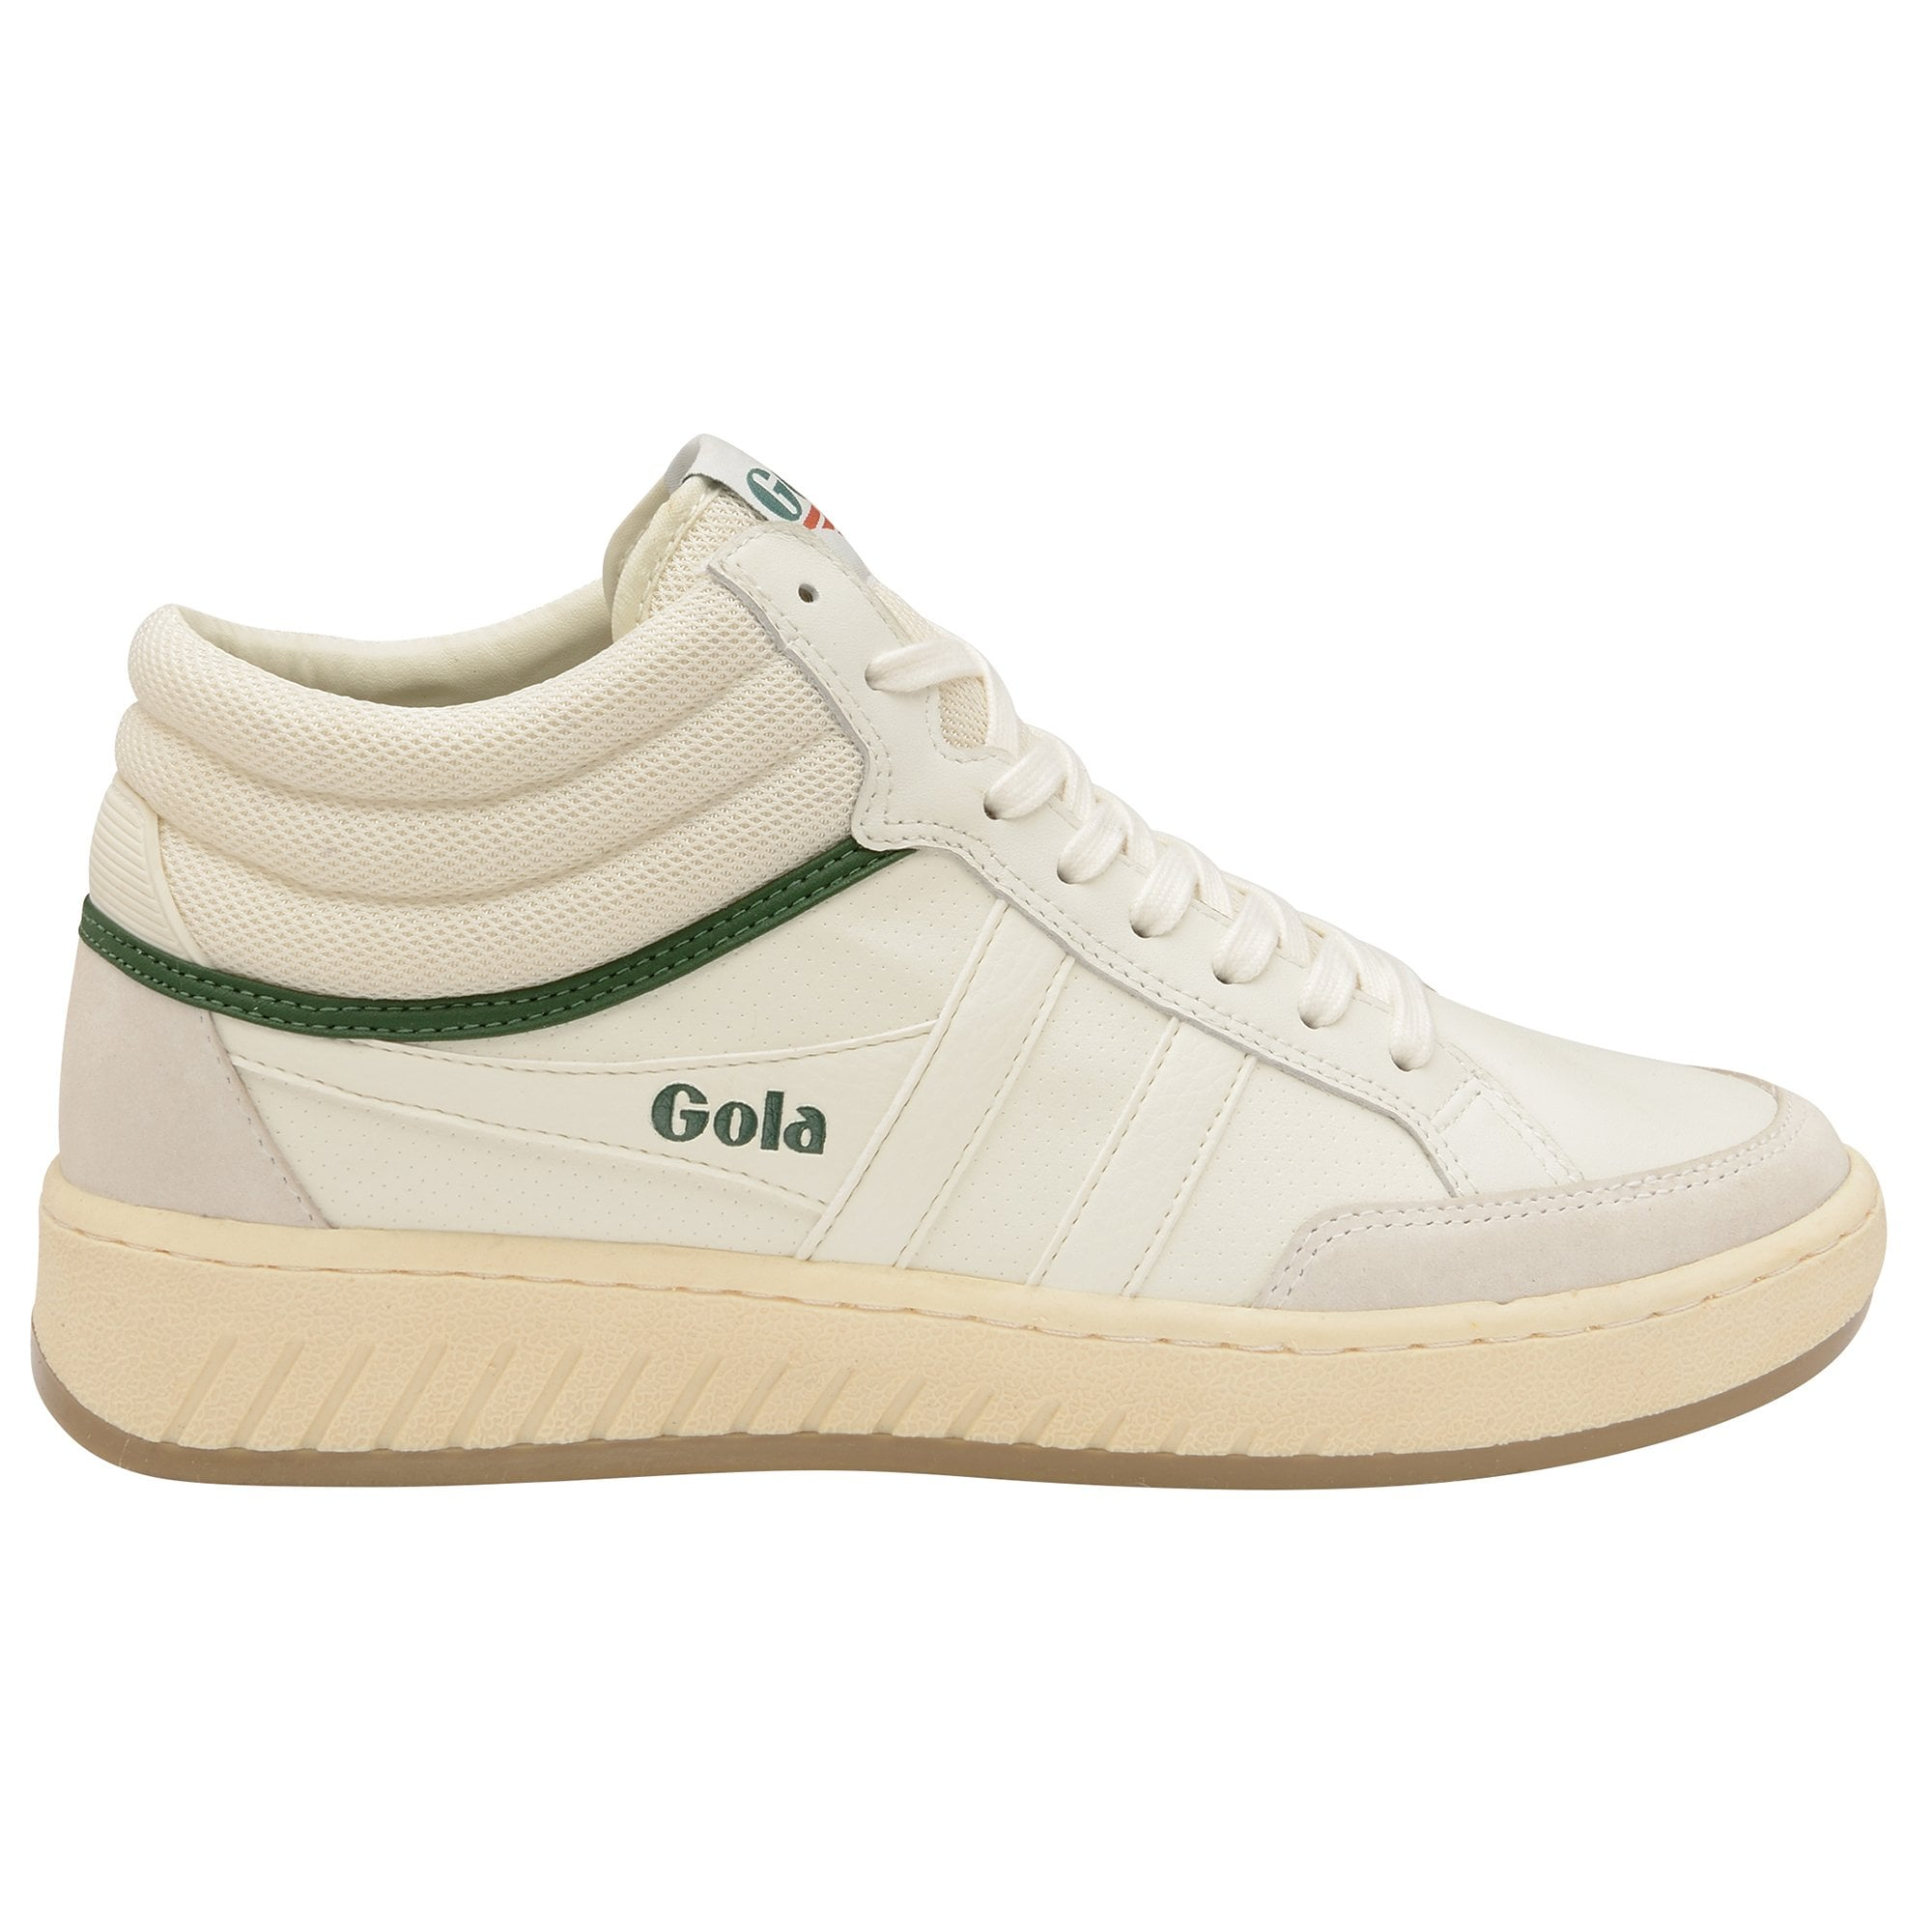 Men's Championship High Sneakers